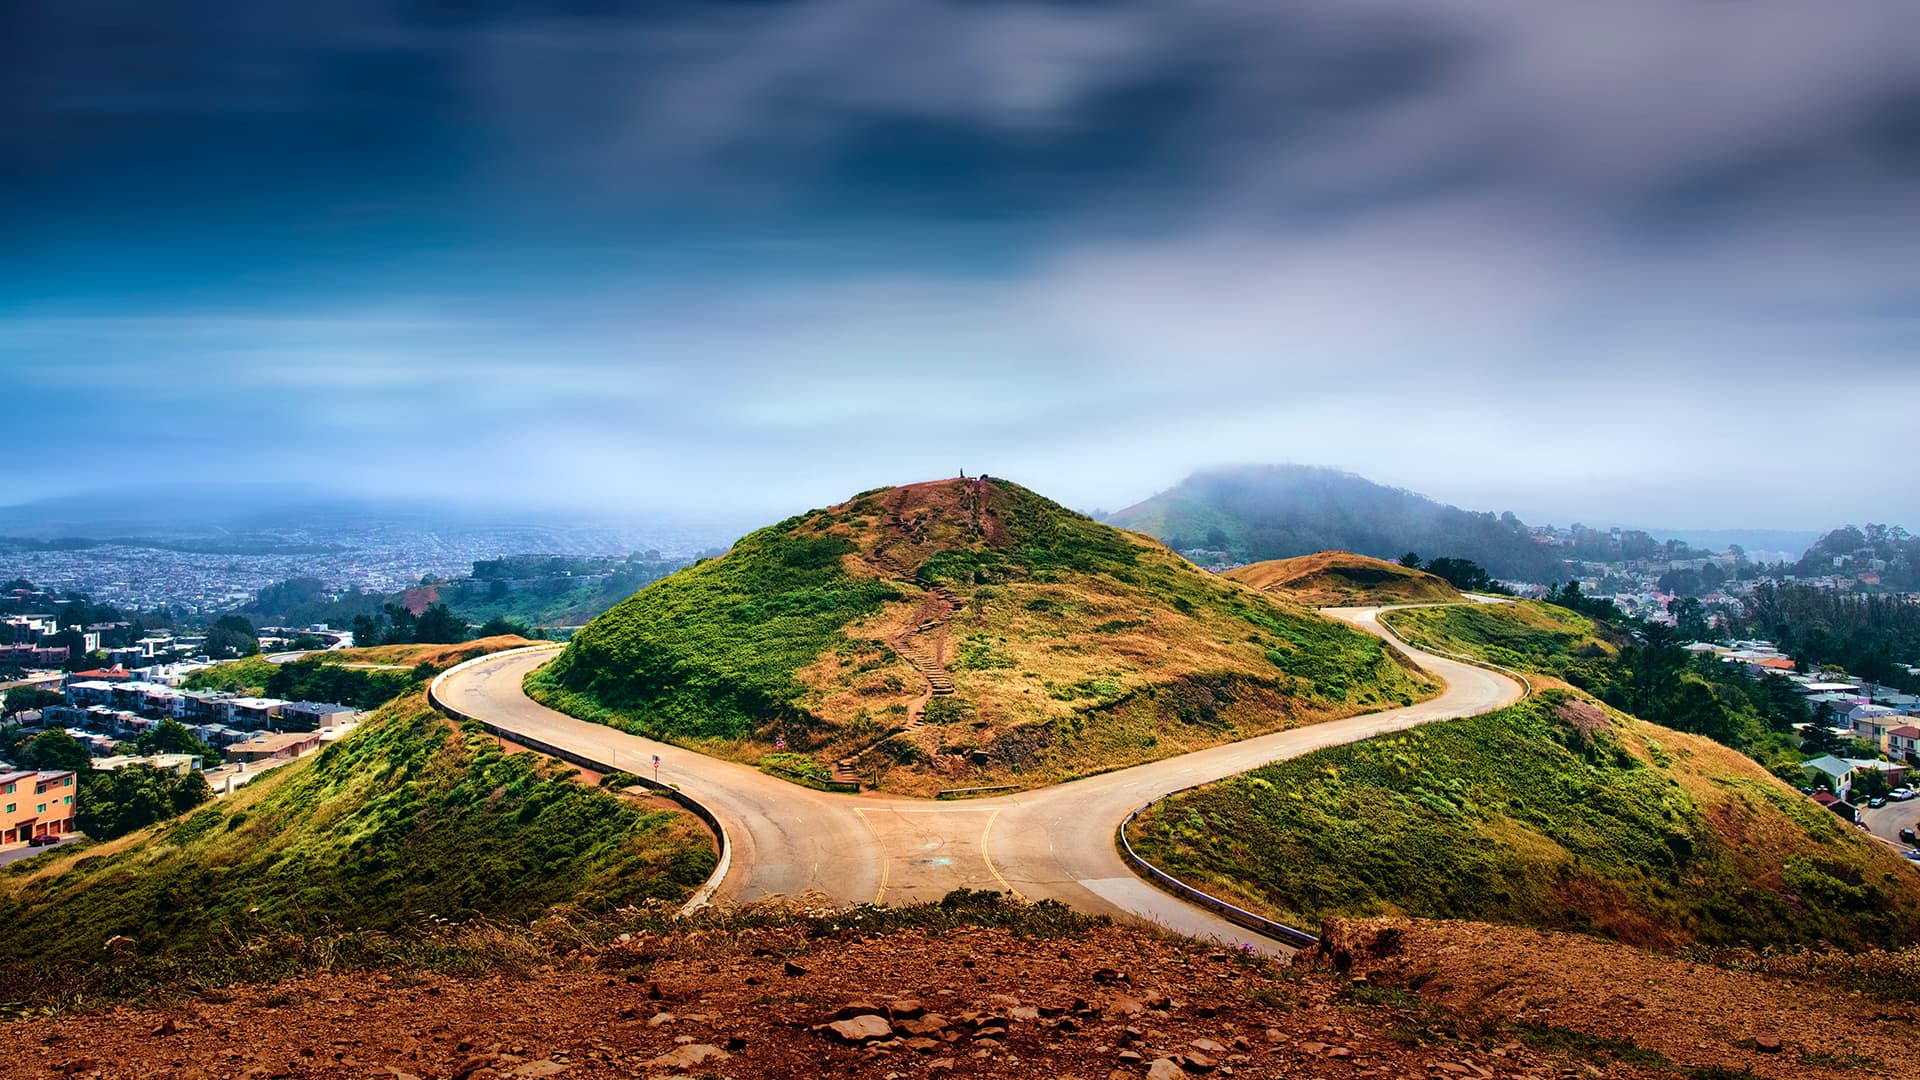 Two roads around a hill